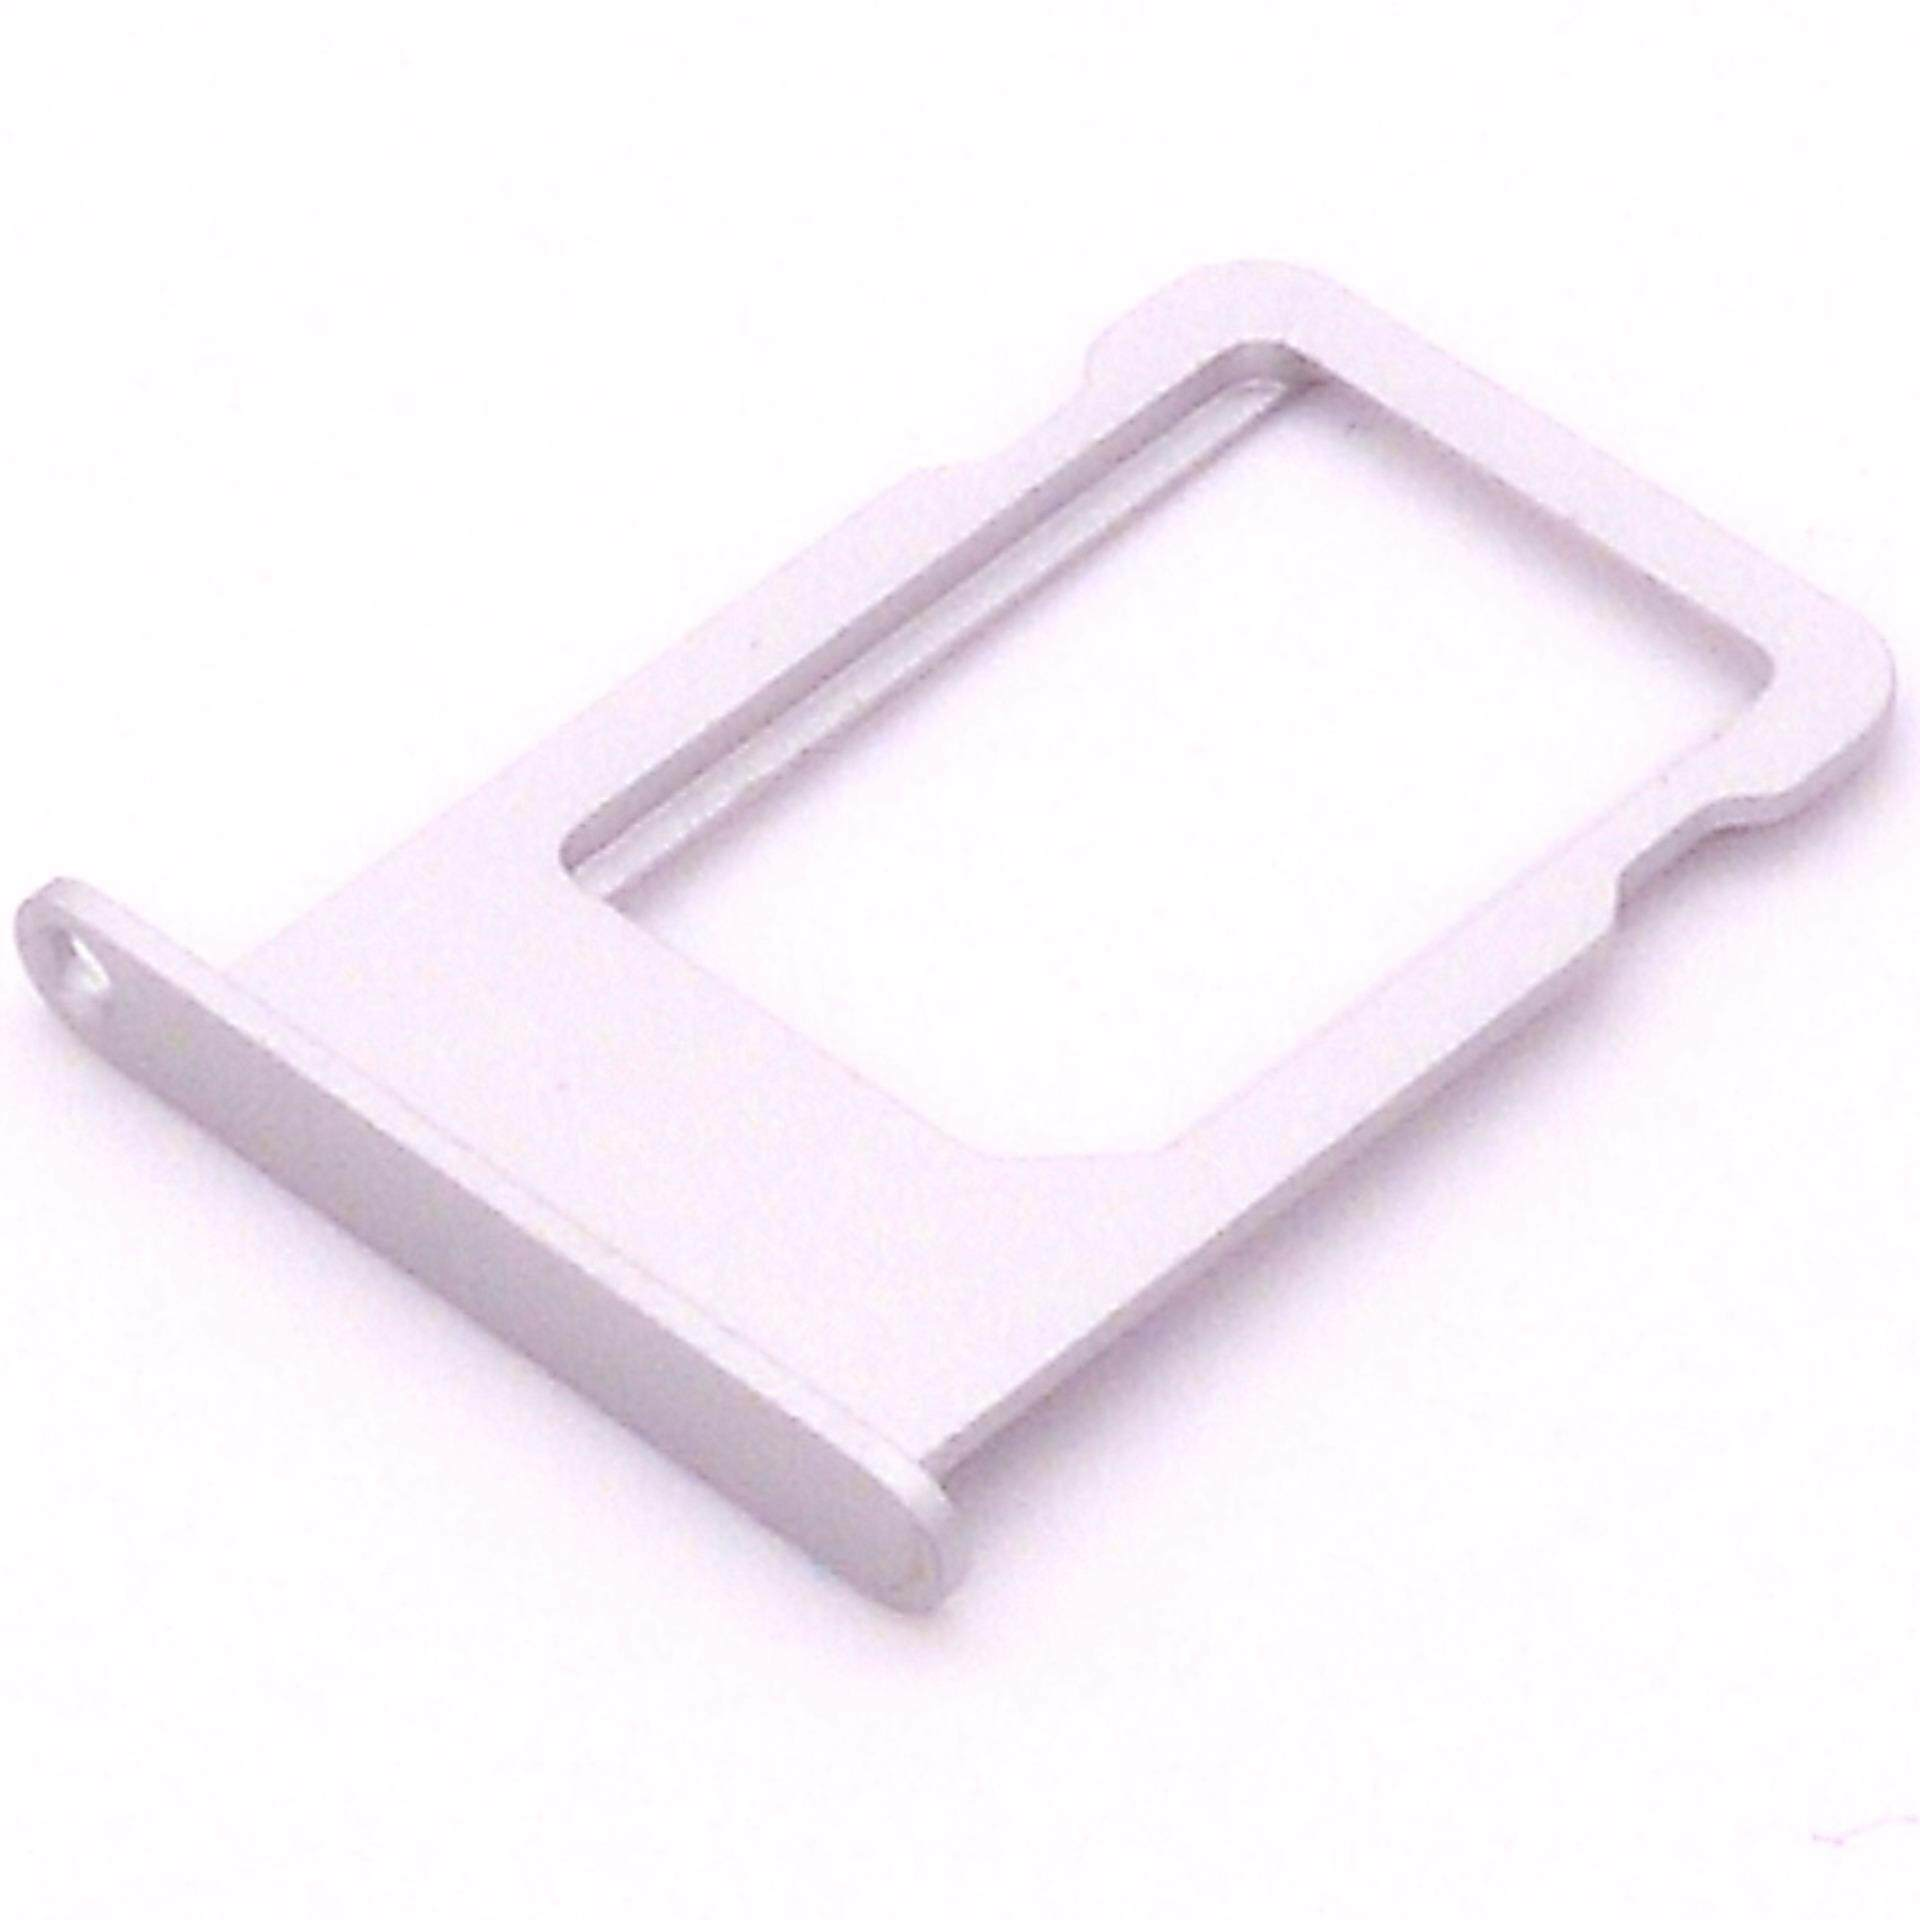 SIM Card Tray Slot Holder Repalcement for Apple iPhone 5G